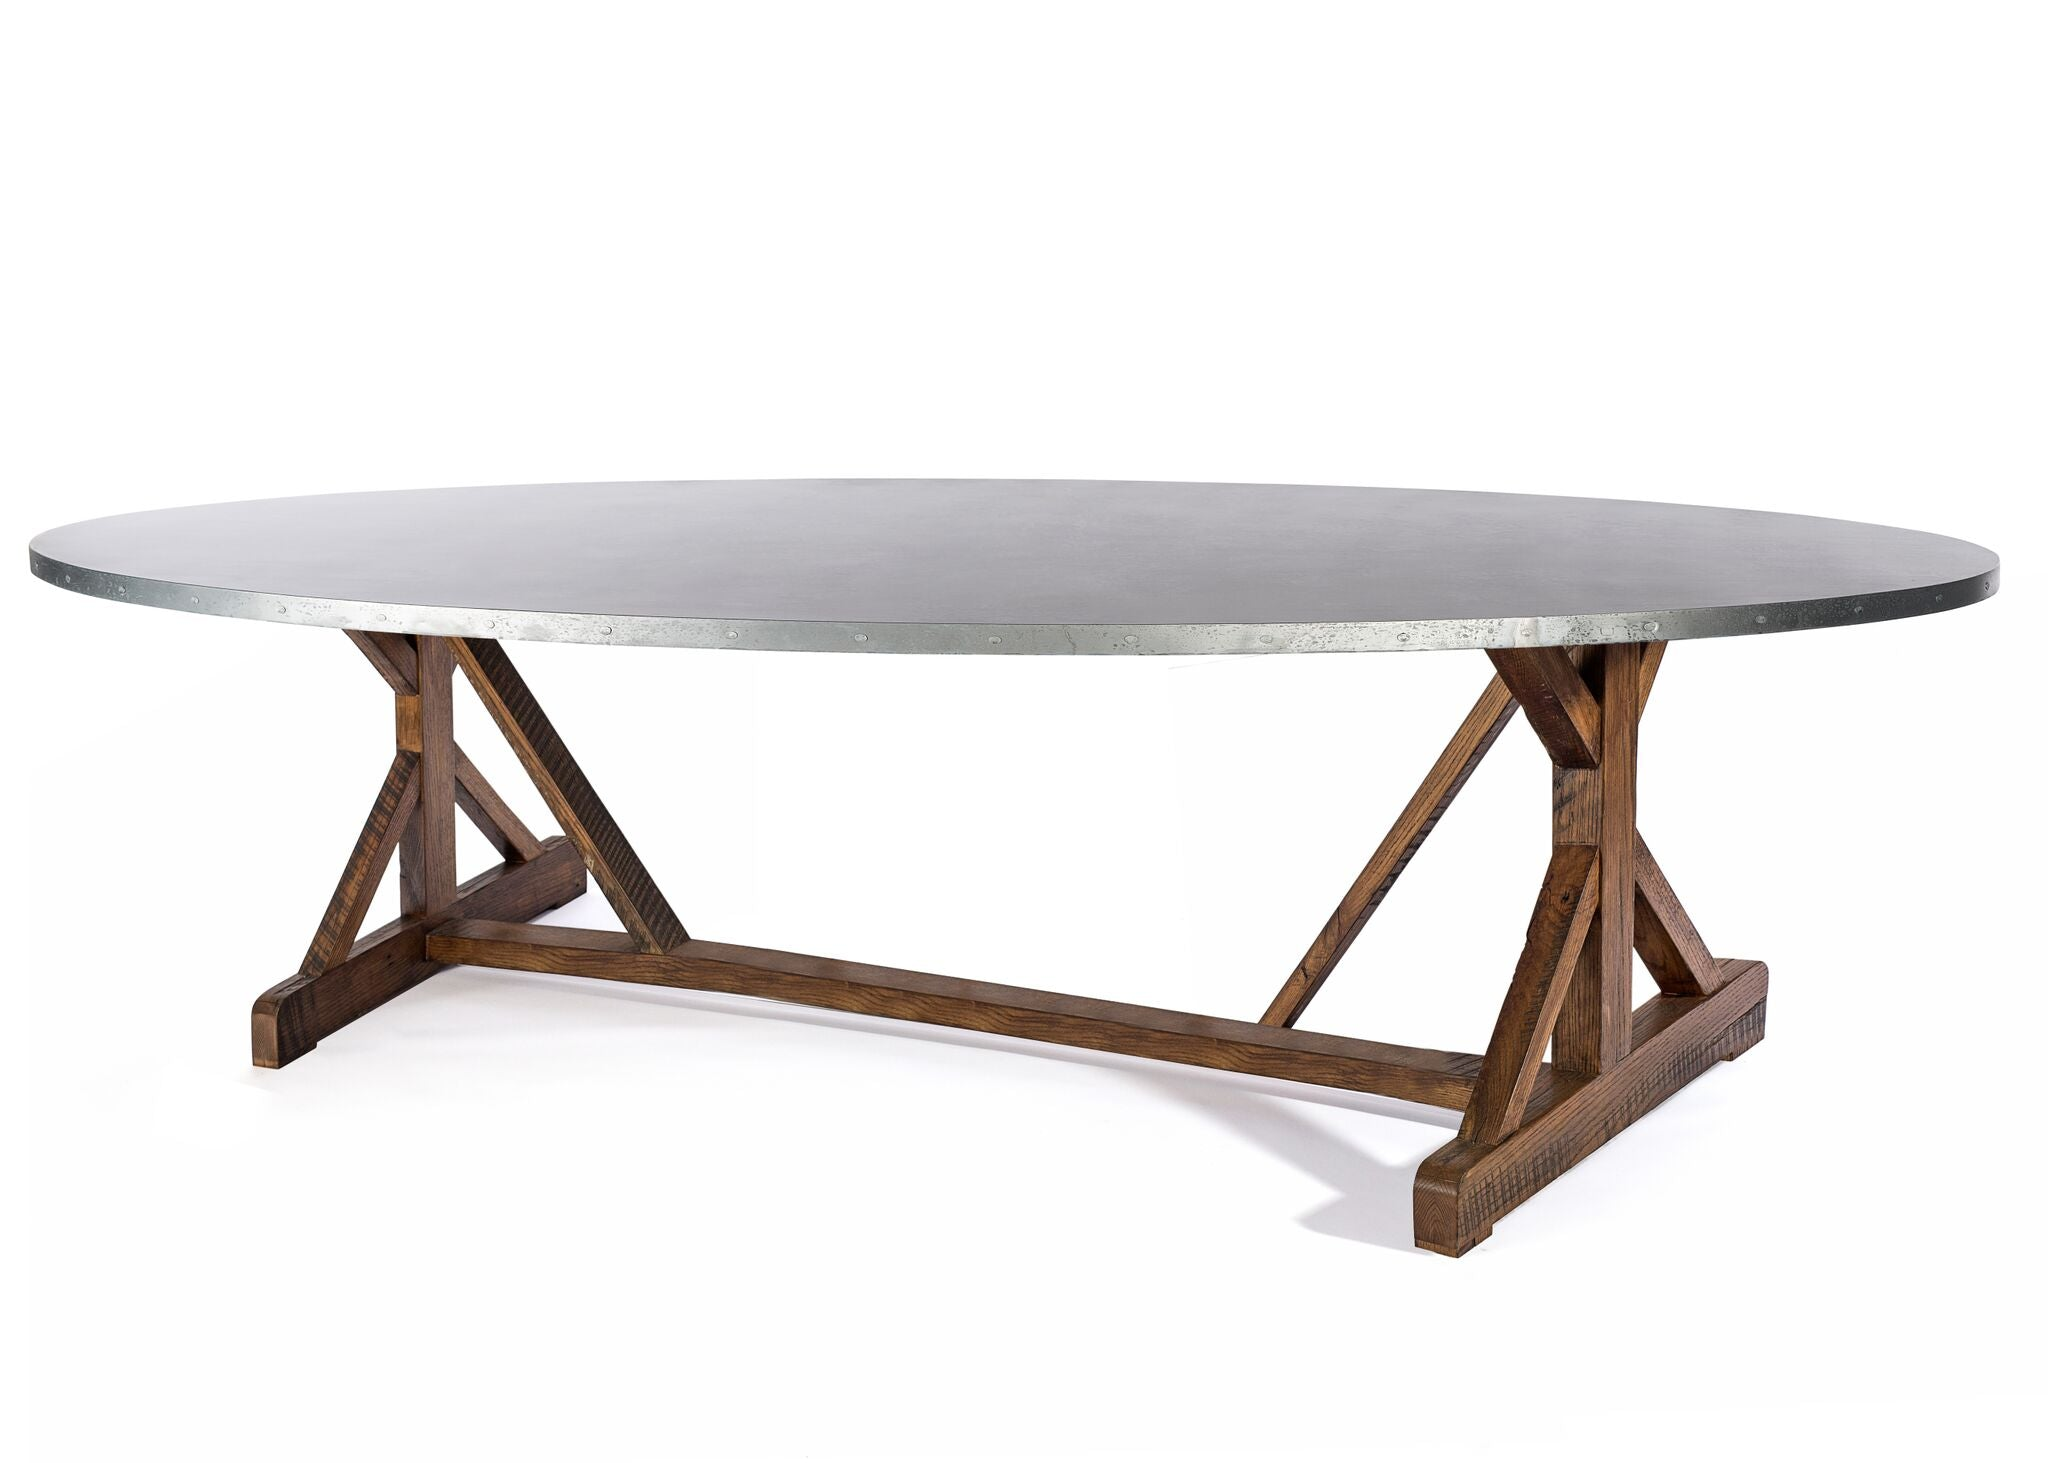 "Zinc Oval Tables | French Trestle Table | CLASSIC | Natural Reclaimed Oak | CUSTOM SIZE L 60 W 37 H 30 | 1.5"" Standard 